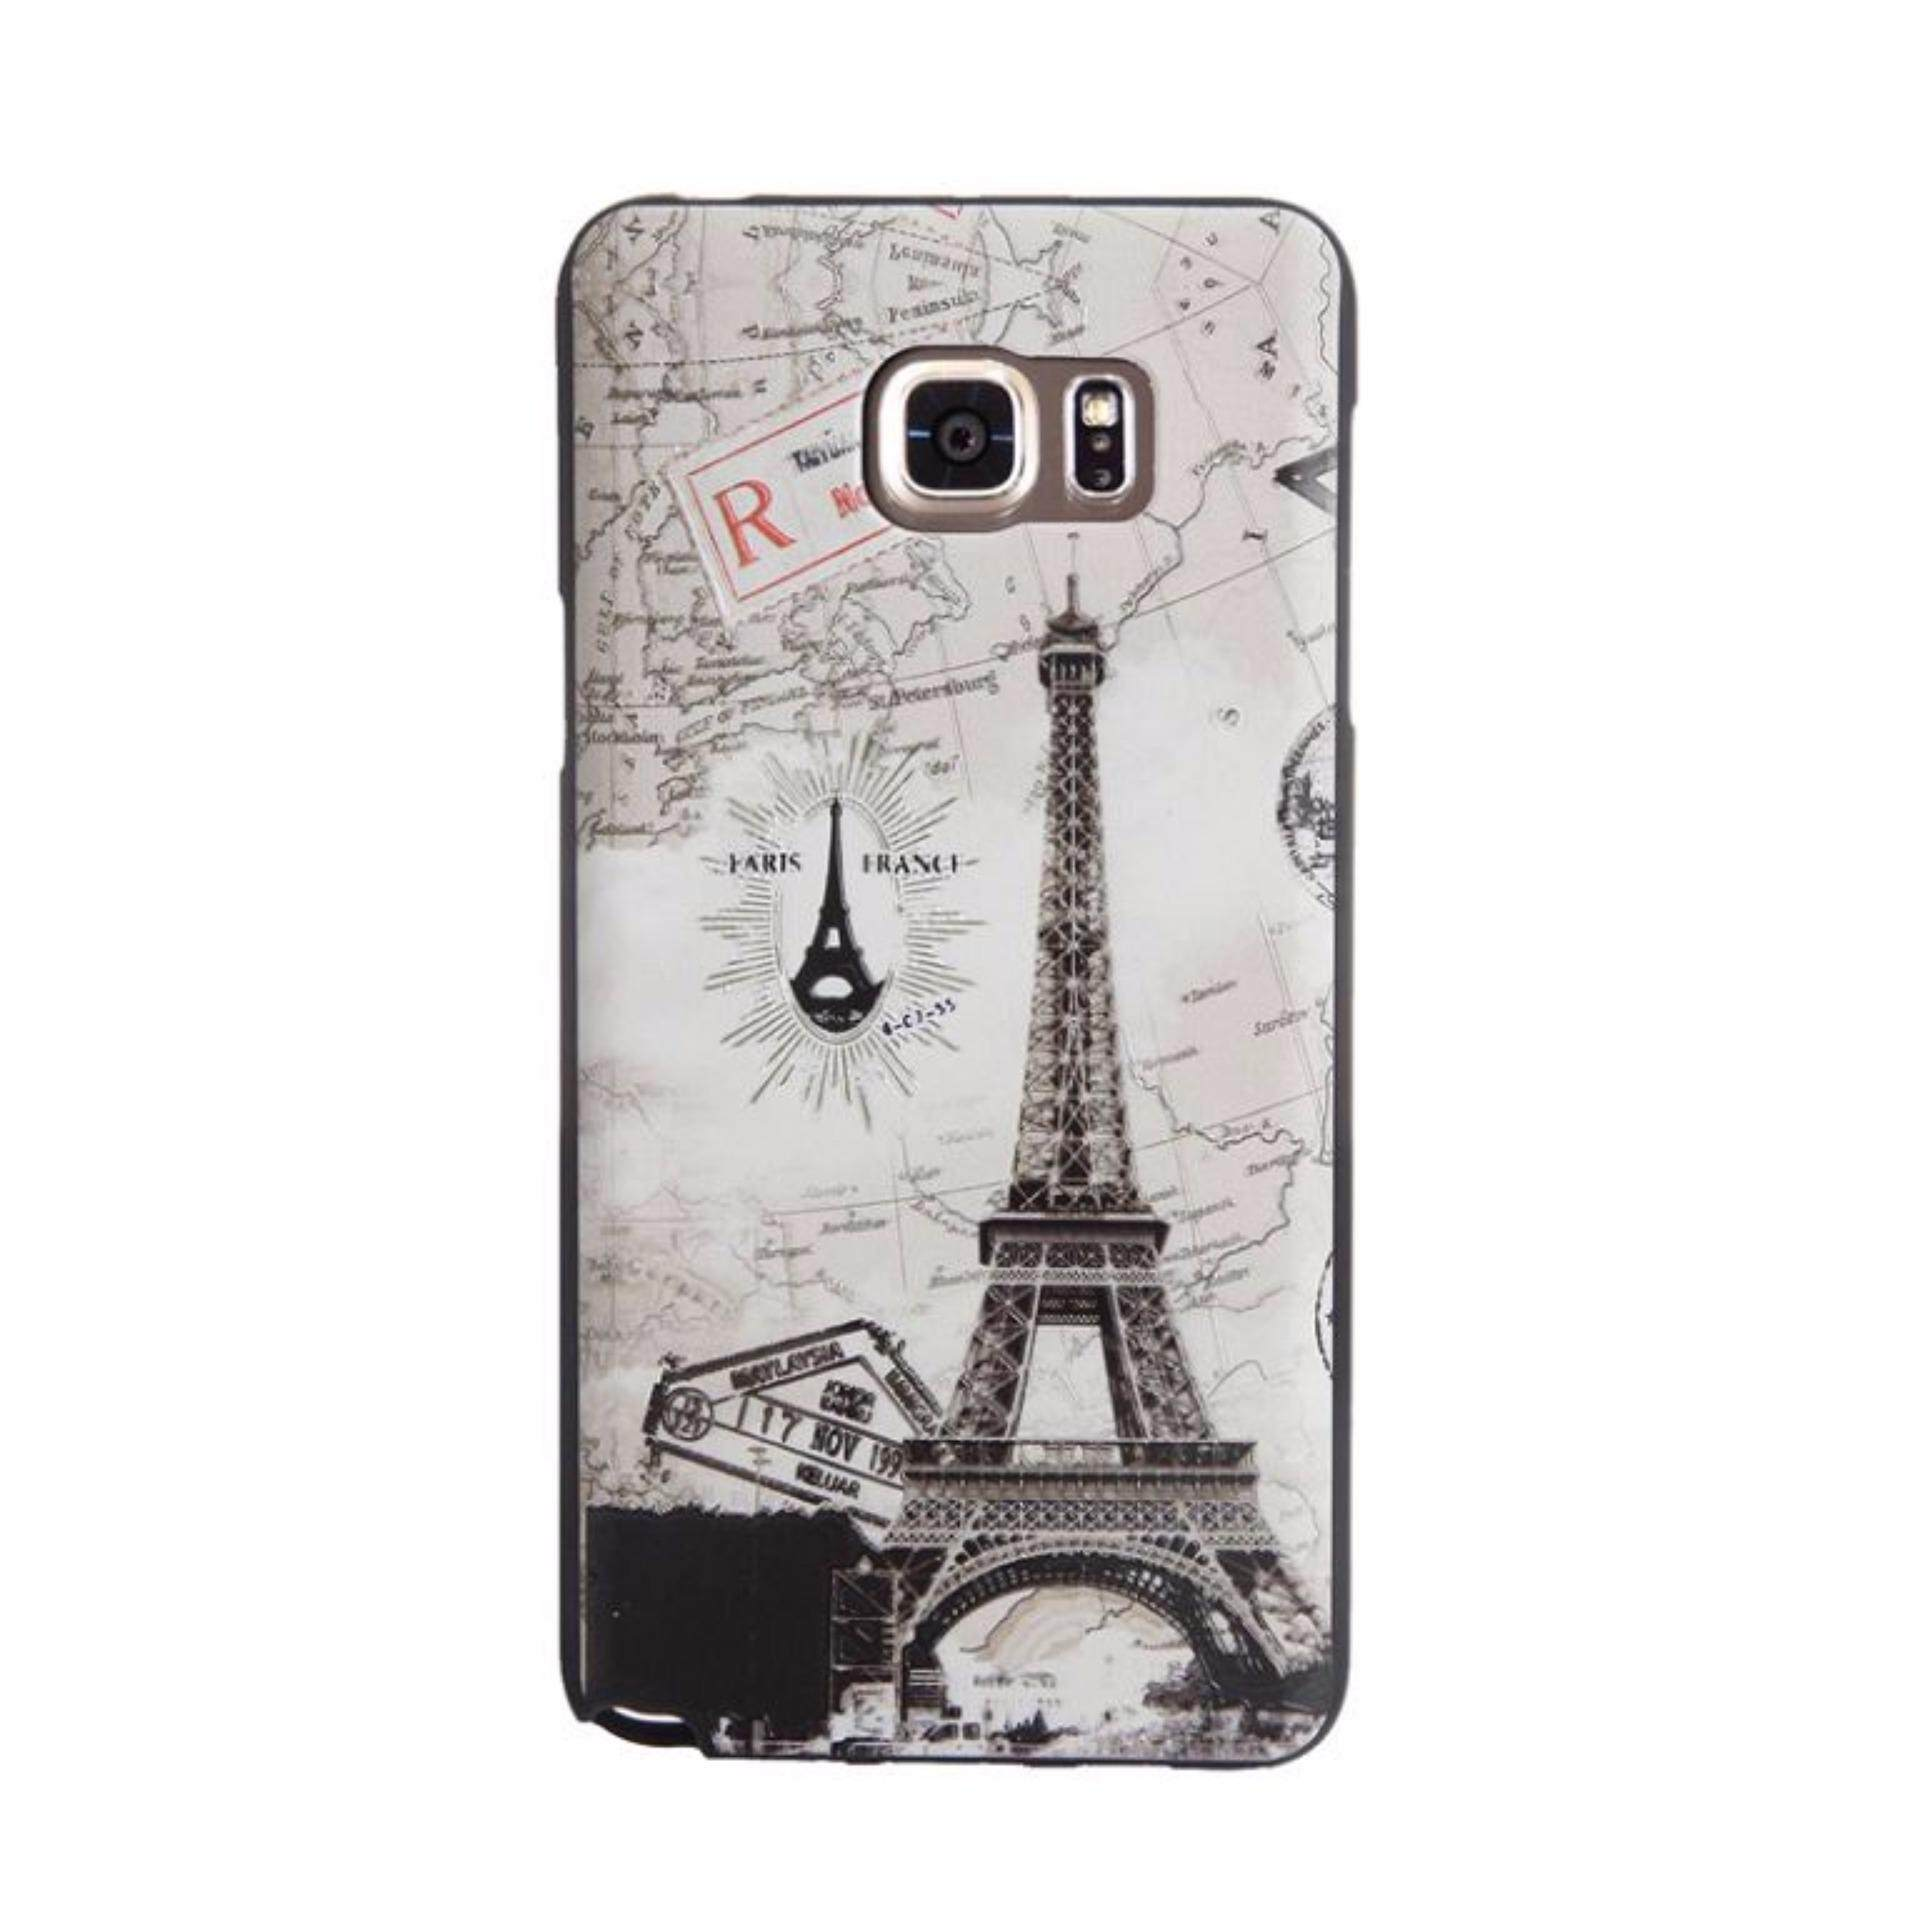 Soft TPU 3D Embossed Painting Cover Case For Samsung Galaxy Note 5(Map tower)